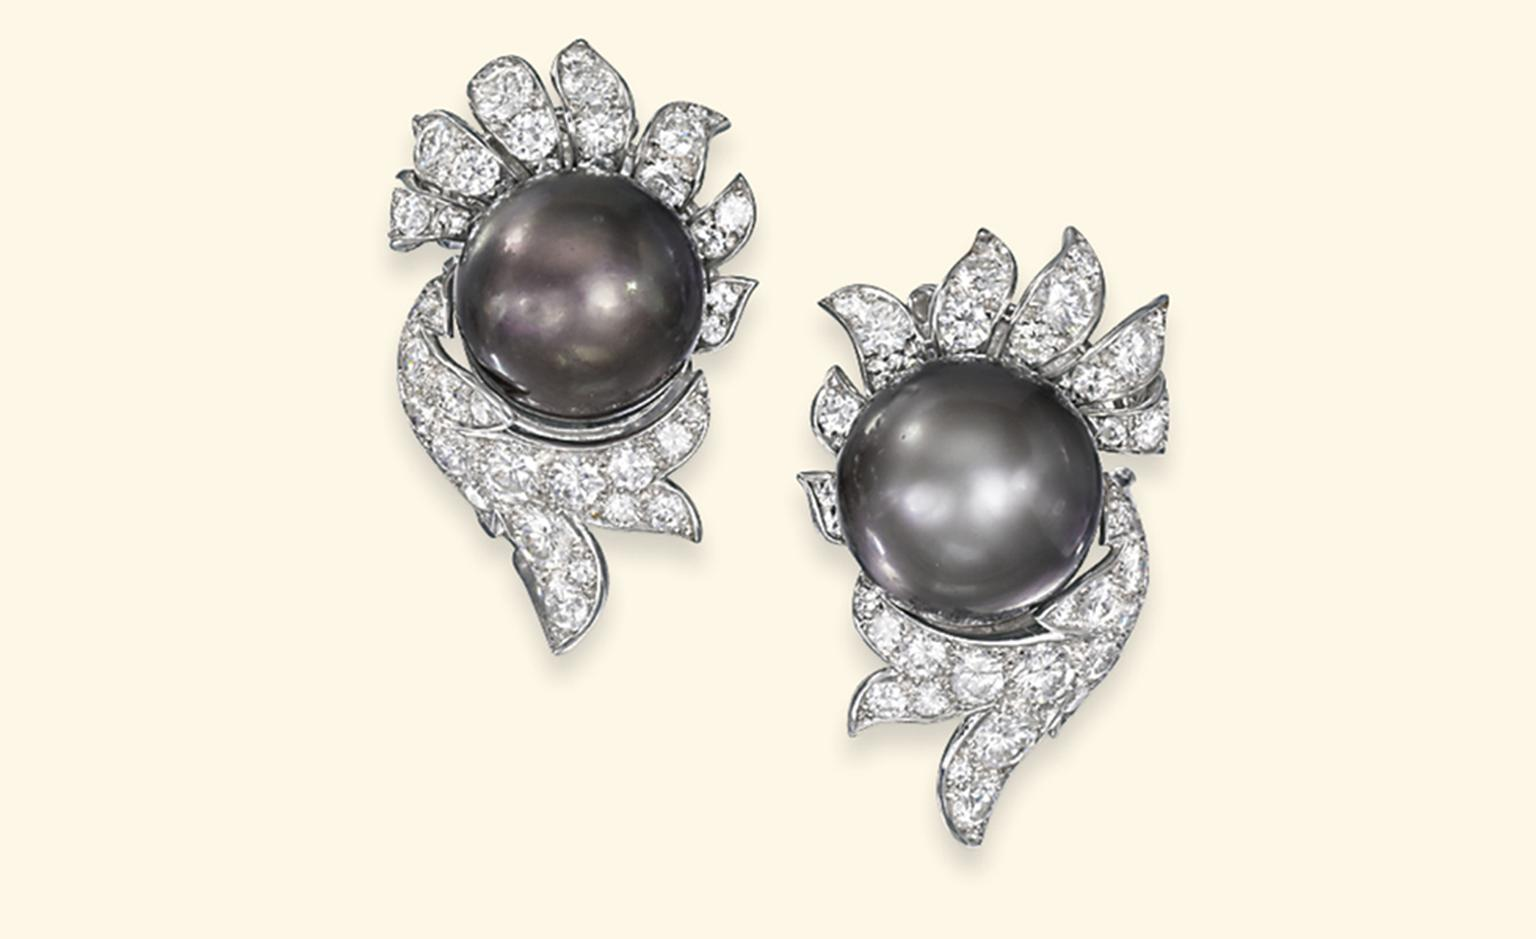 Lot 283. A pair of pearl and diamond ear clips, by Van Cleef & Arpels. Estimate £50,000-£70,000. SOLD FOR £265,250